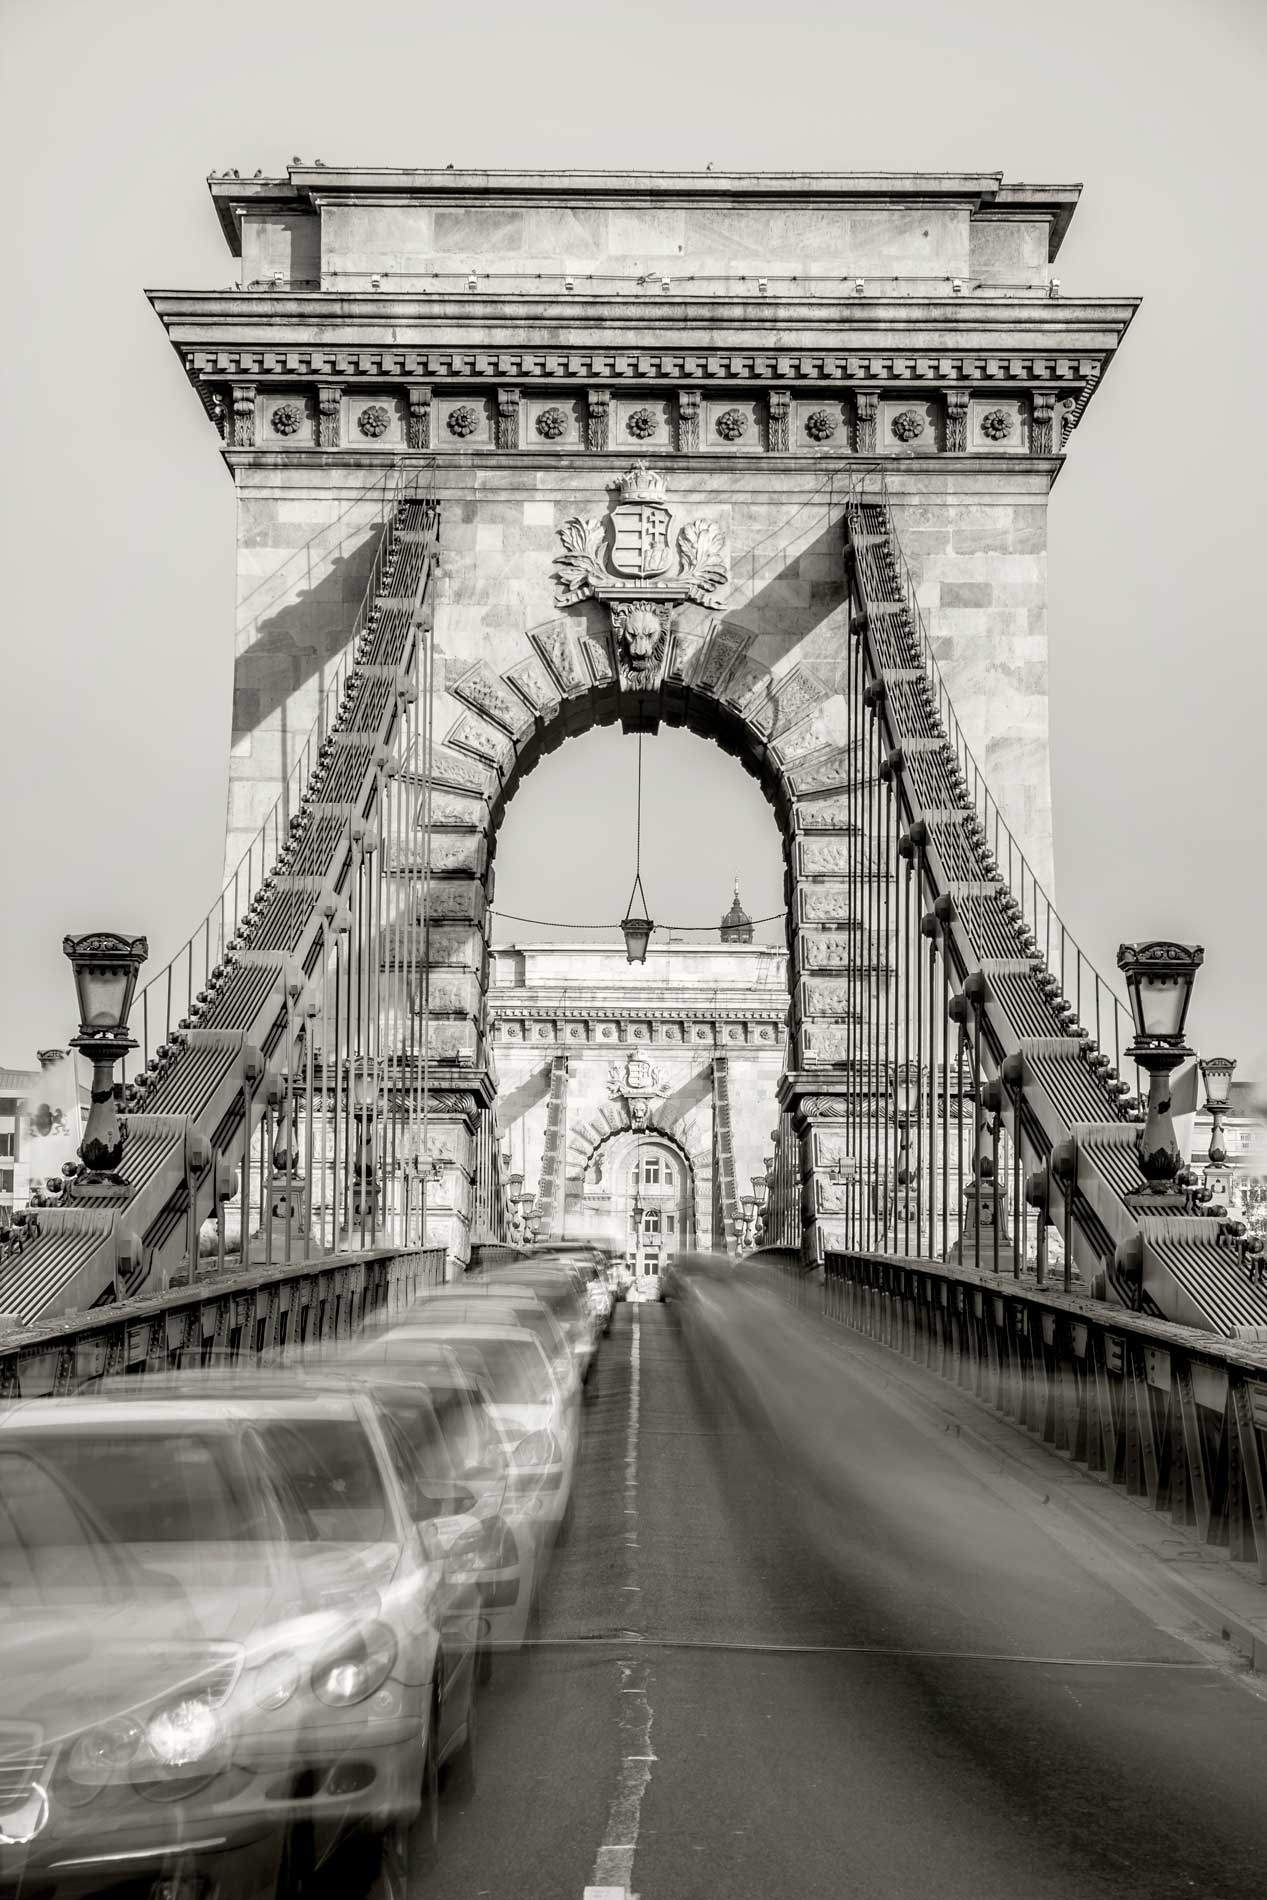 budapest_atthary_photography_bridge_15